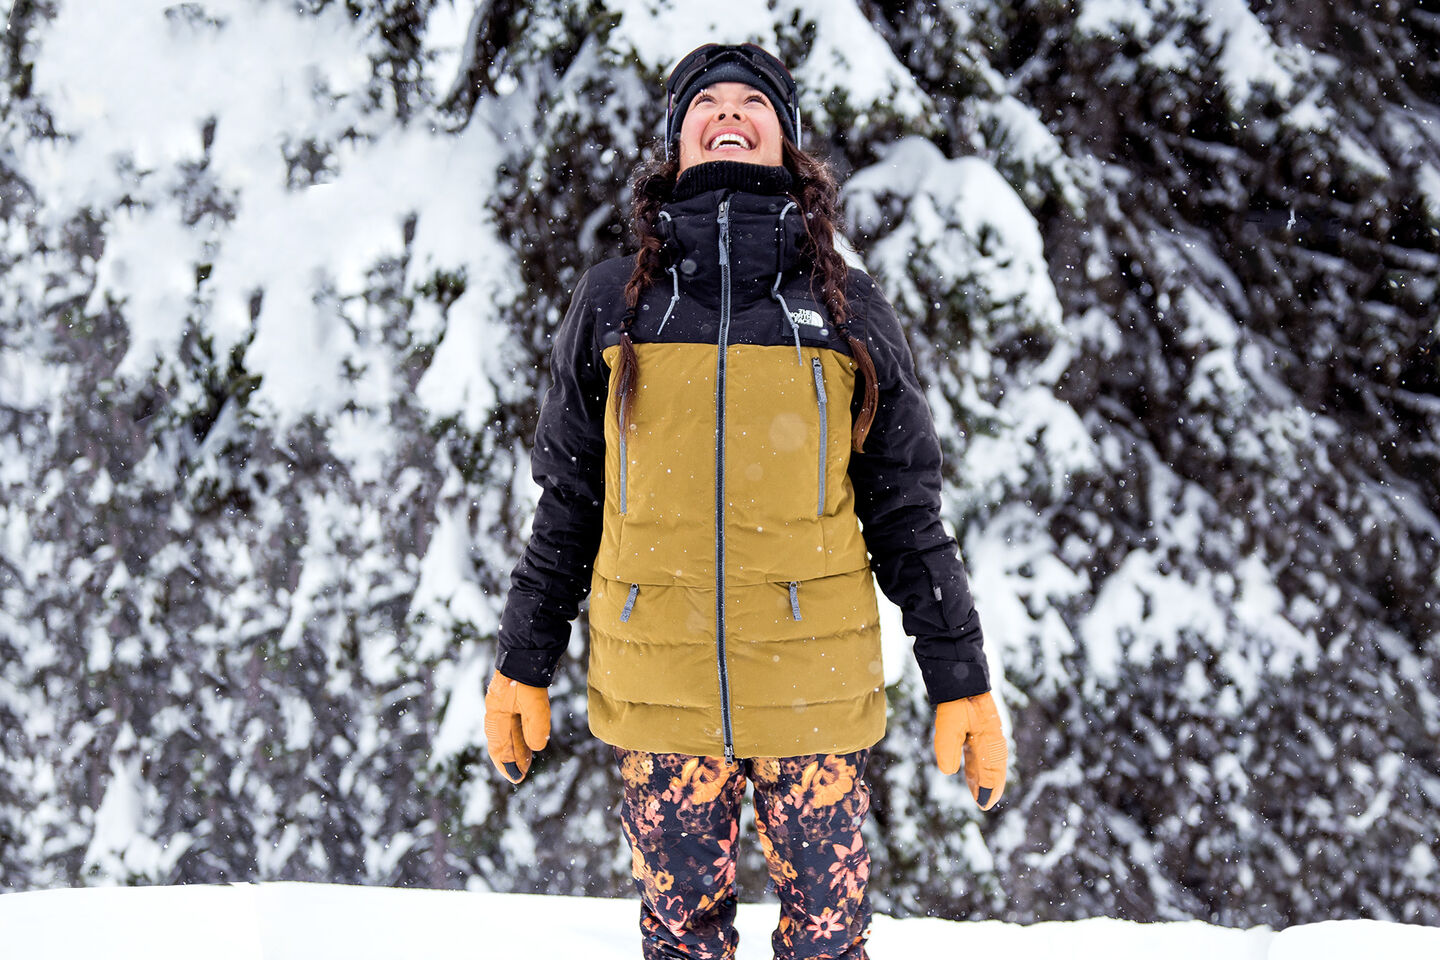 woman in the north face clothing smiling by trees